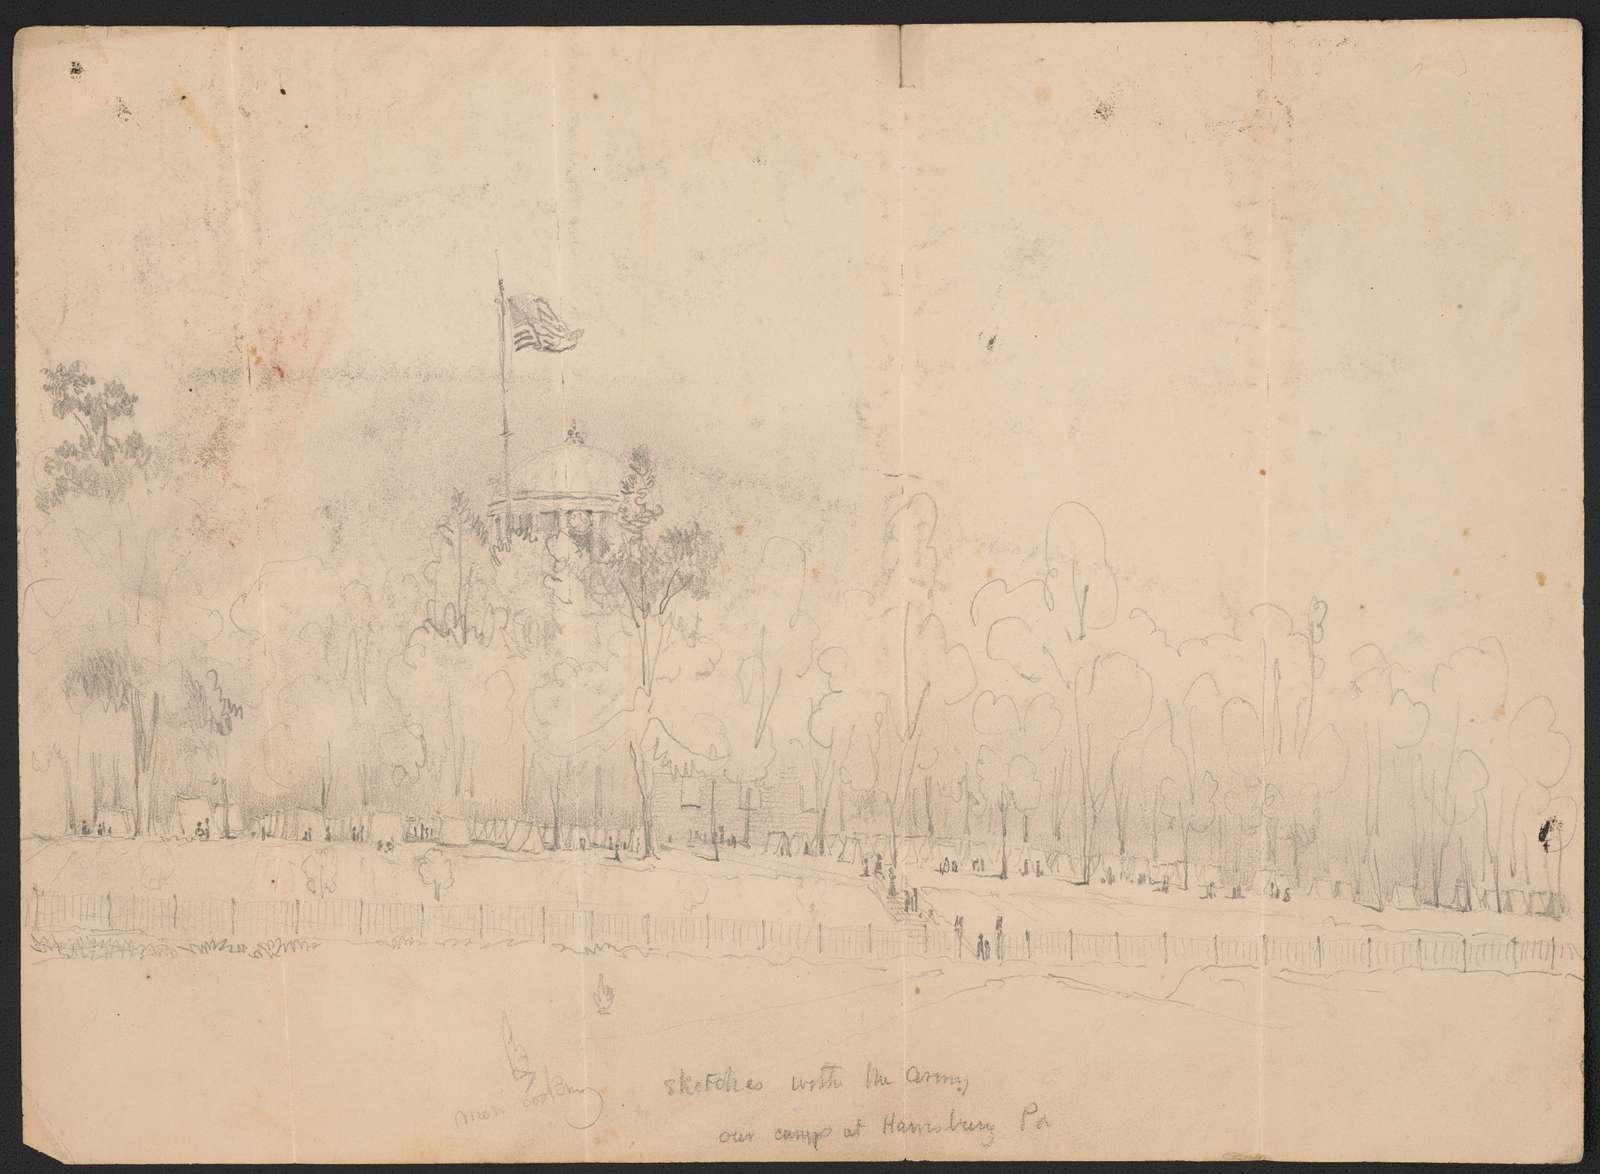 Sketches with the army - our camp at Harrisburg, Pa